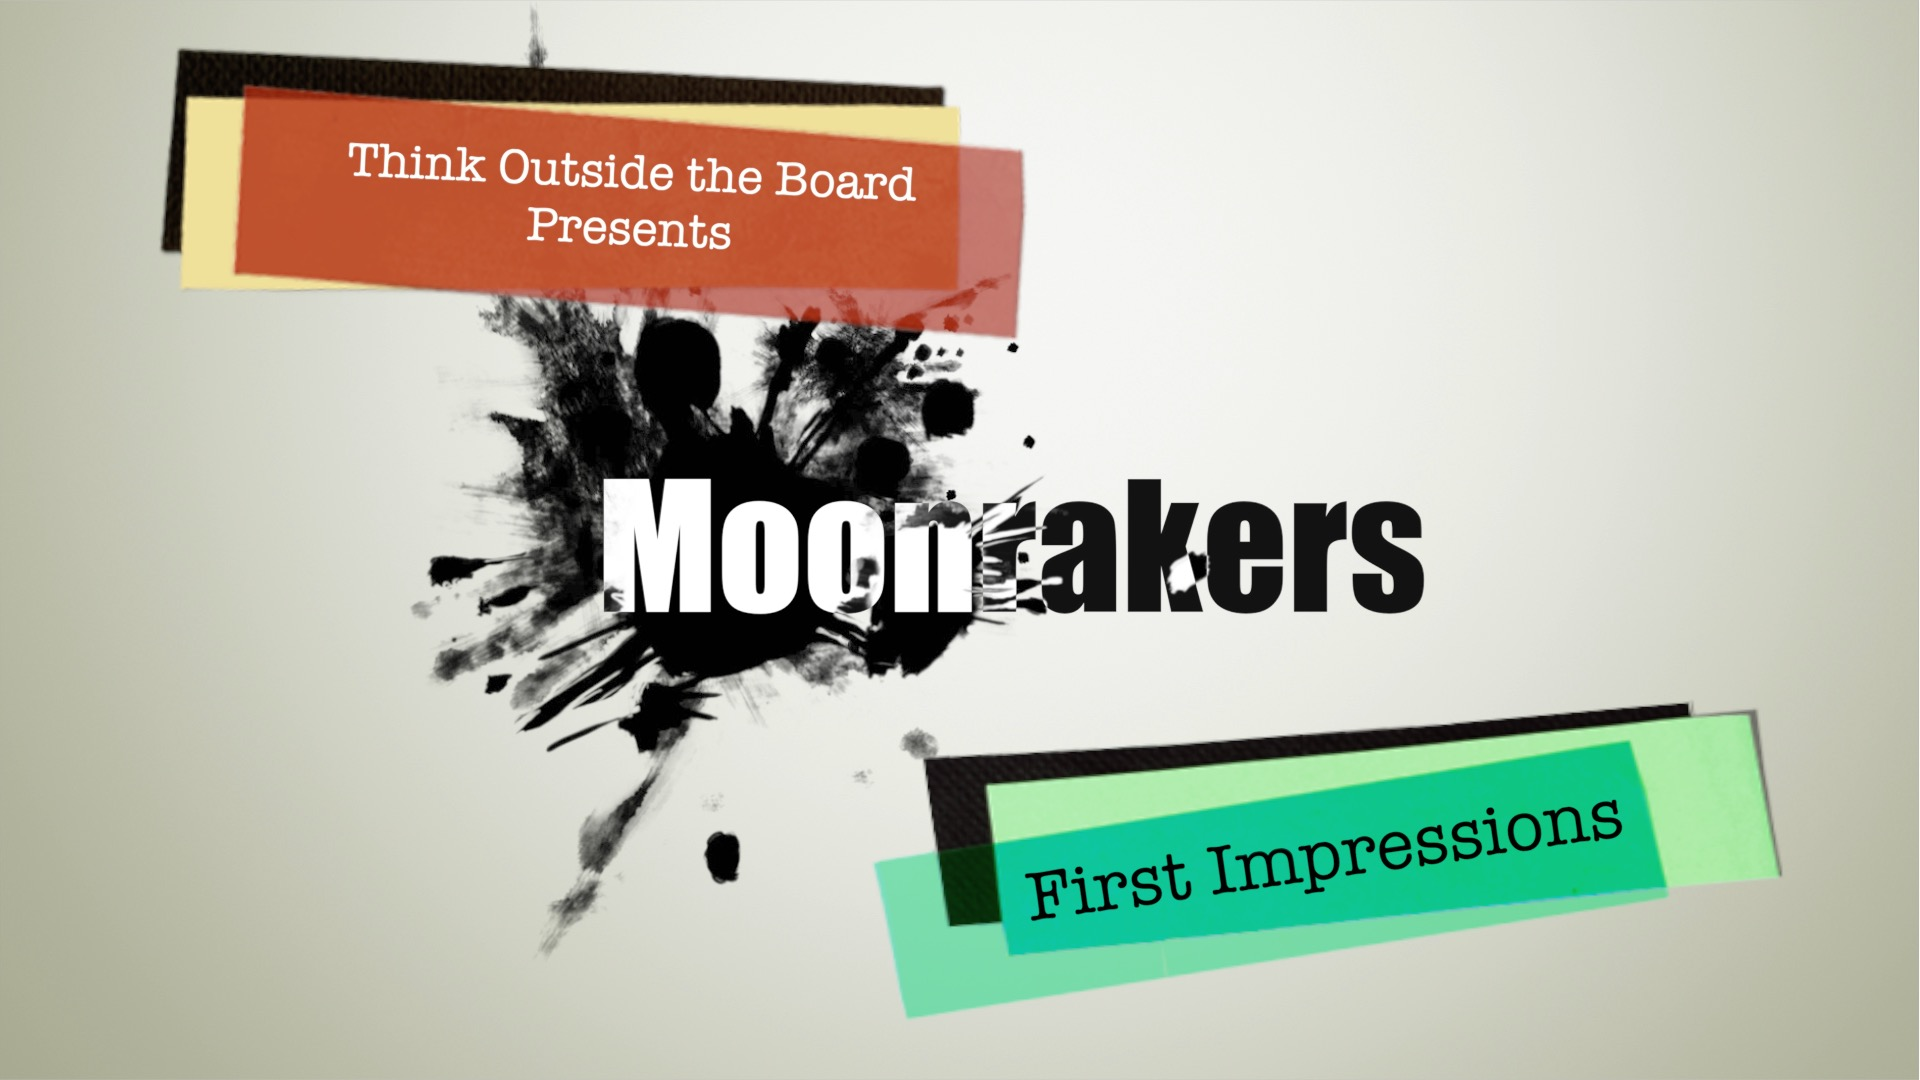 Moonrakers First Impressions